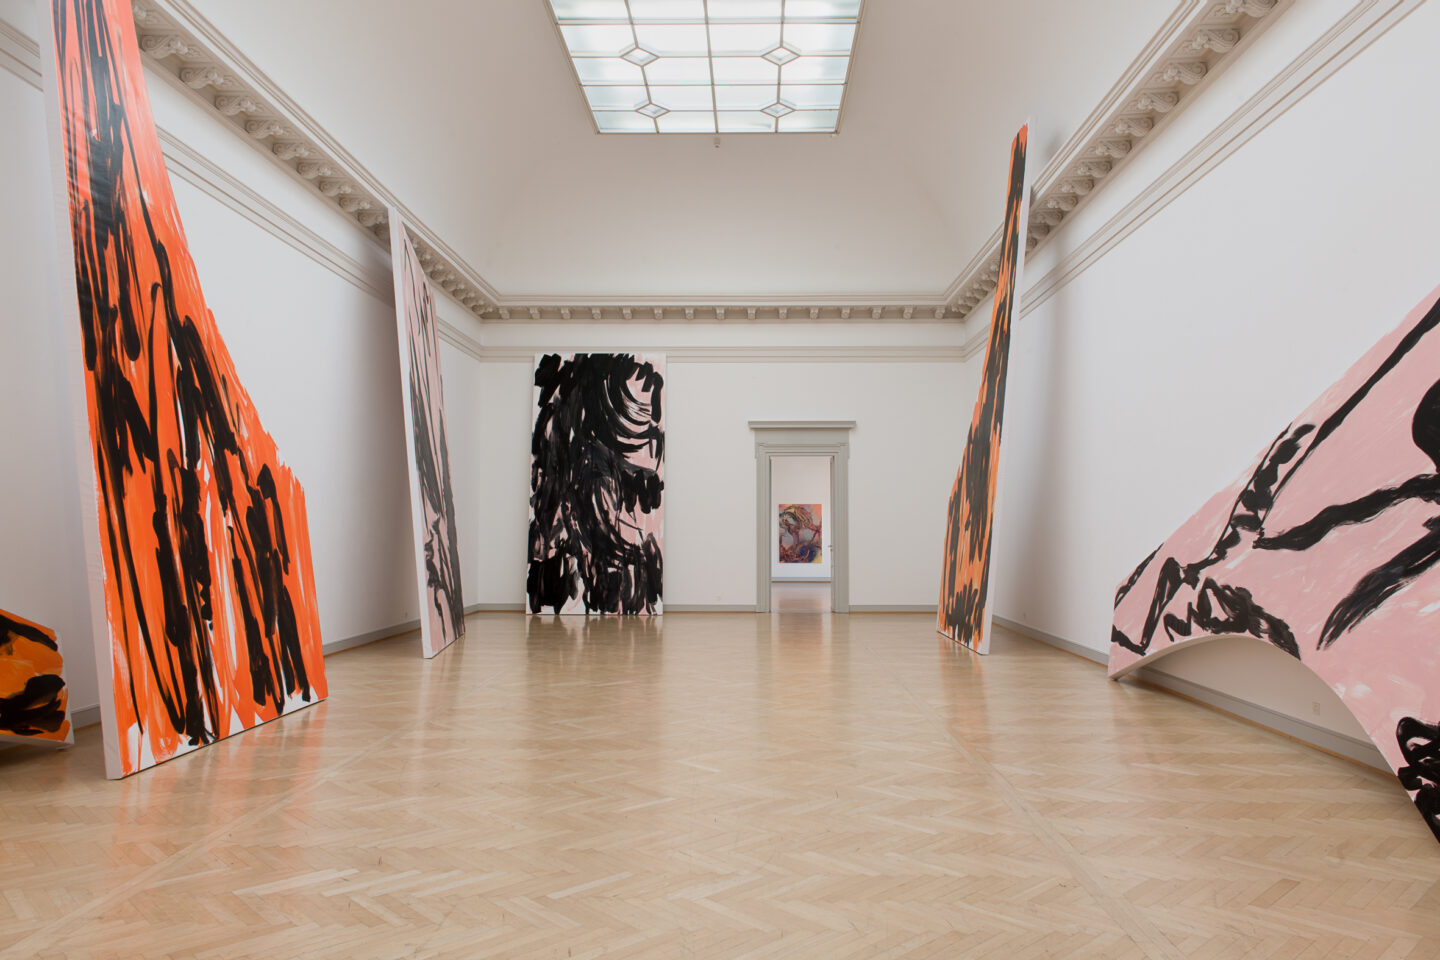 Installation View Judy Millar Soloshow «The Future and the Past Perfect ; view on It to Them to Us to I, 2018» at Kunstmuseum St. Gallen, 2019 / Photo: Sebastian Stalder